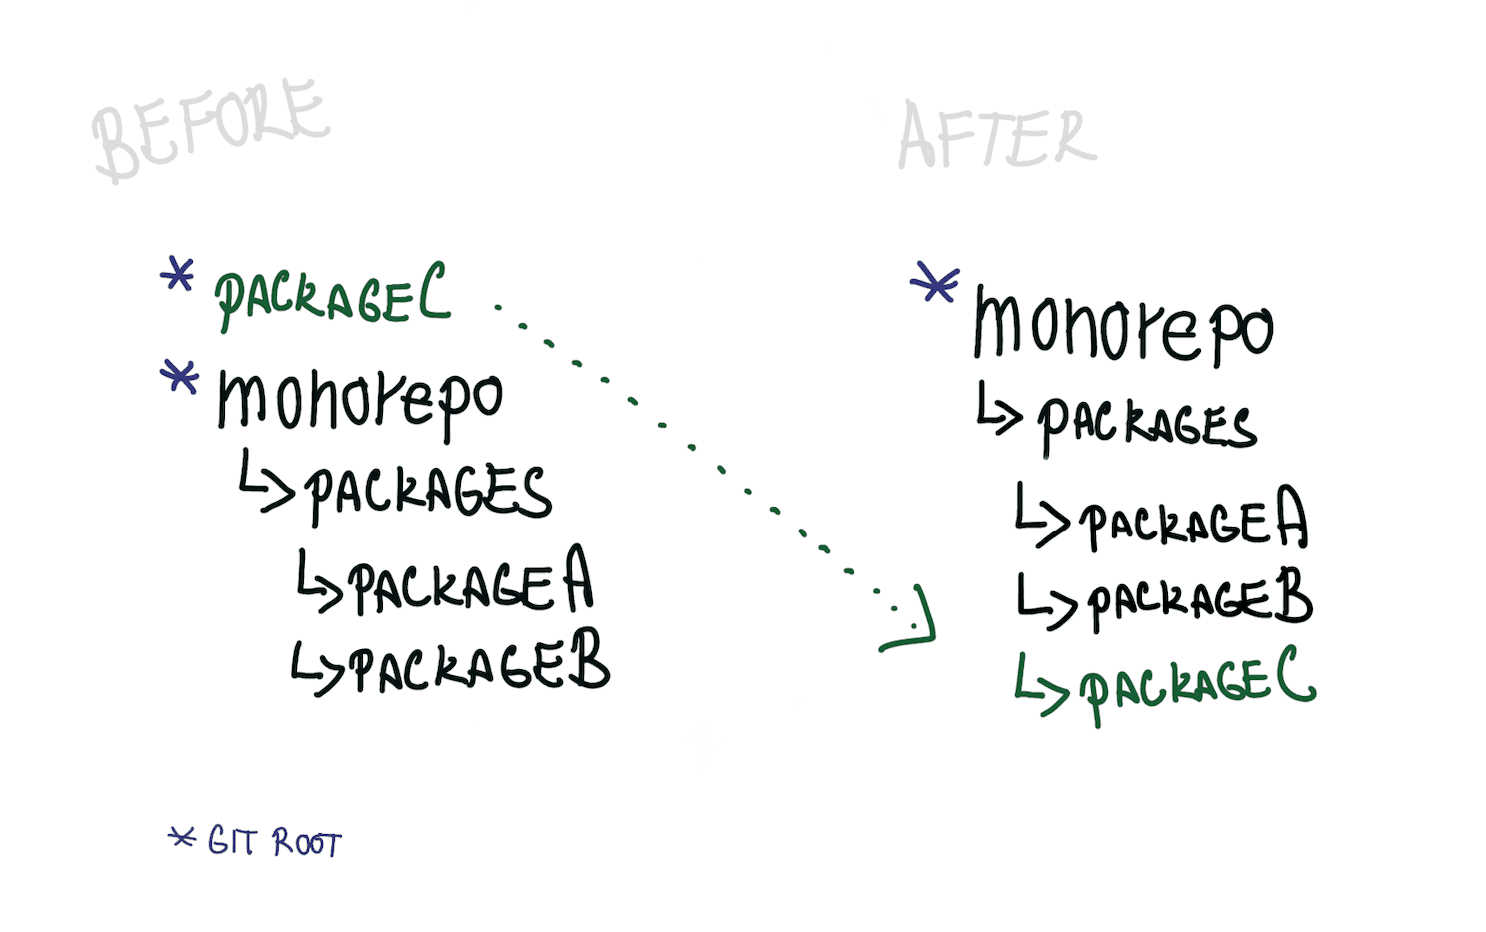 Folder structure before and after merge